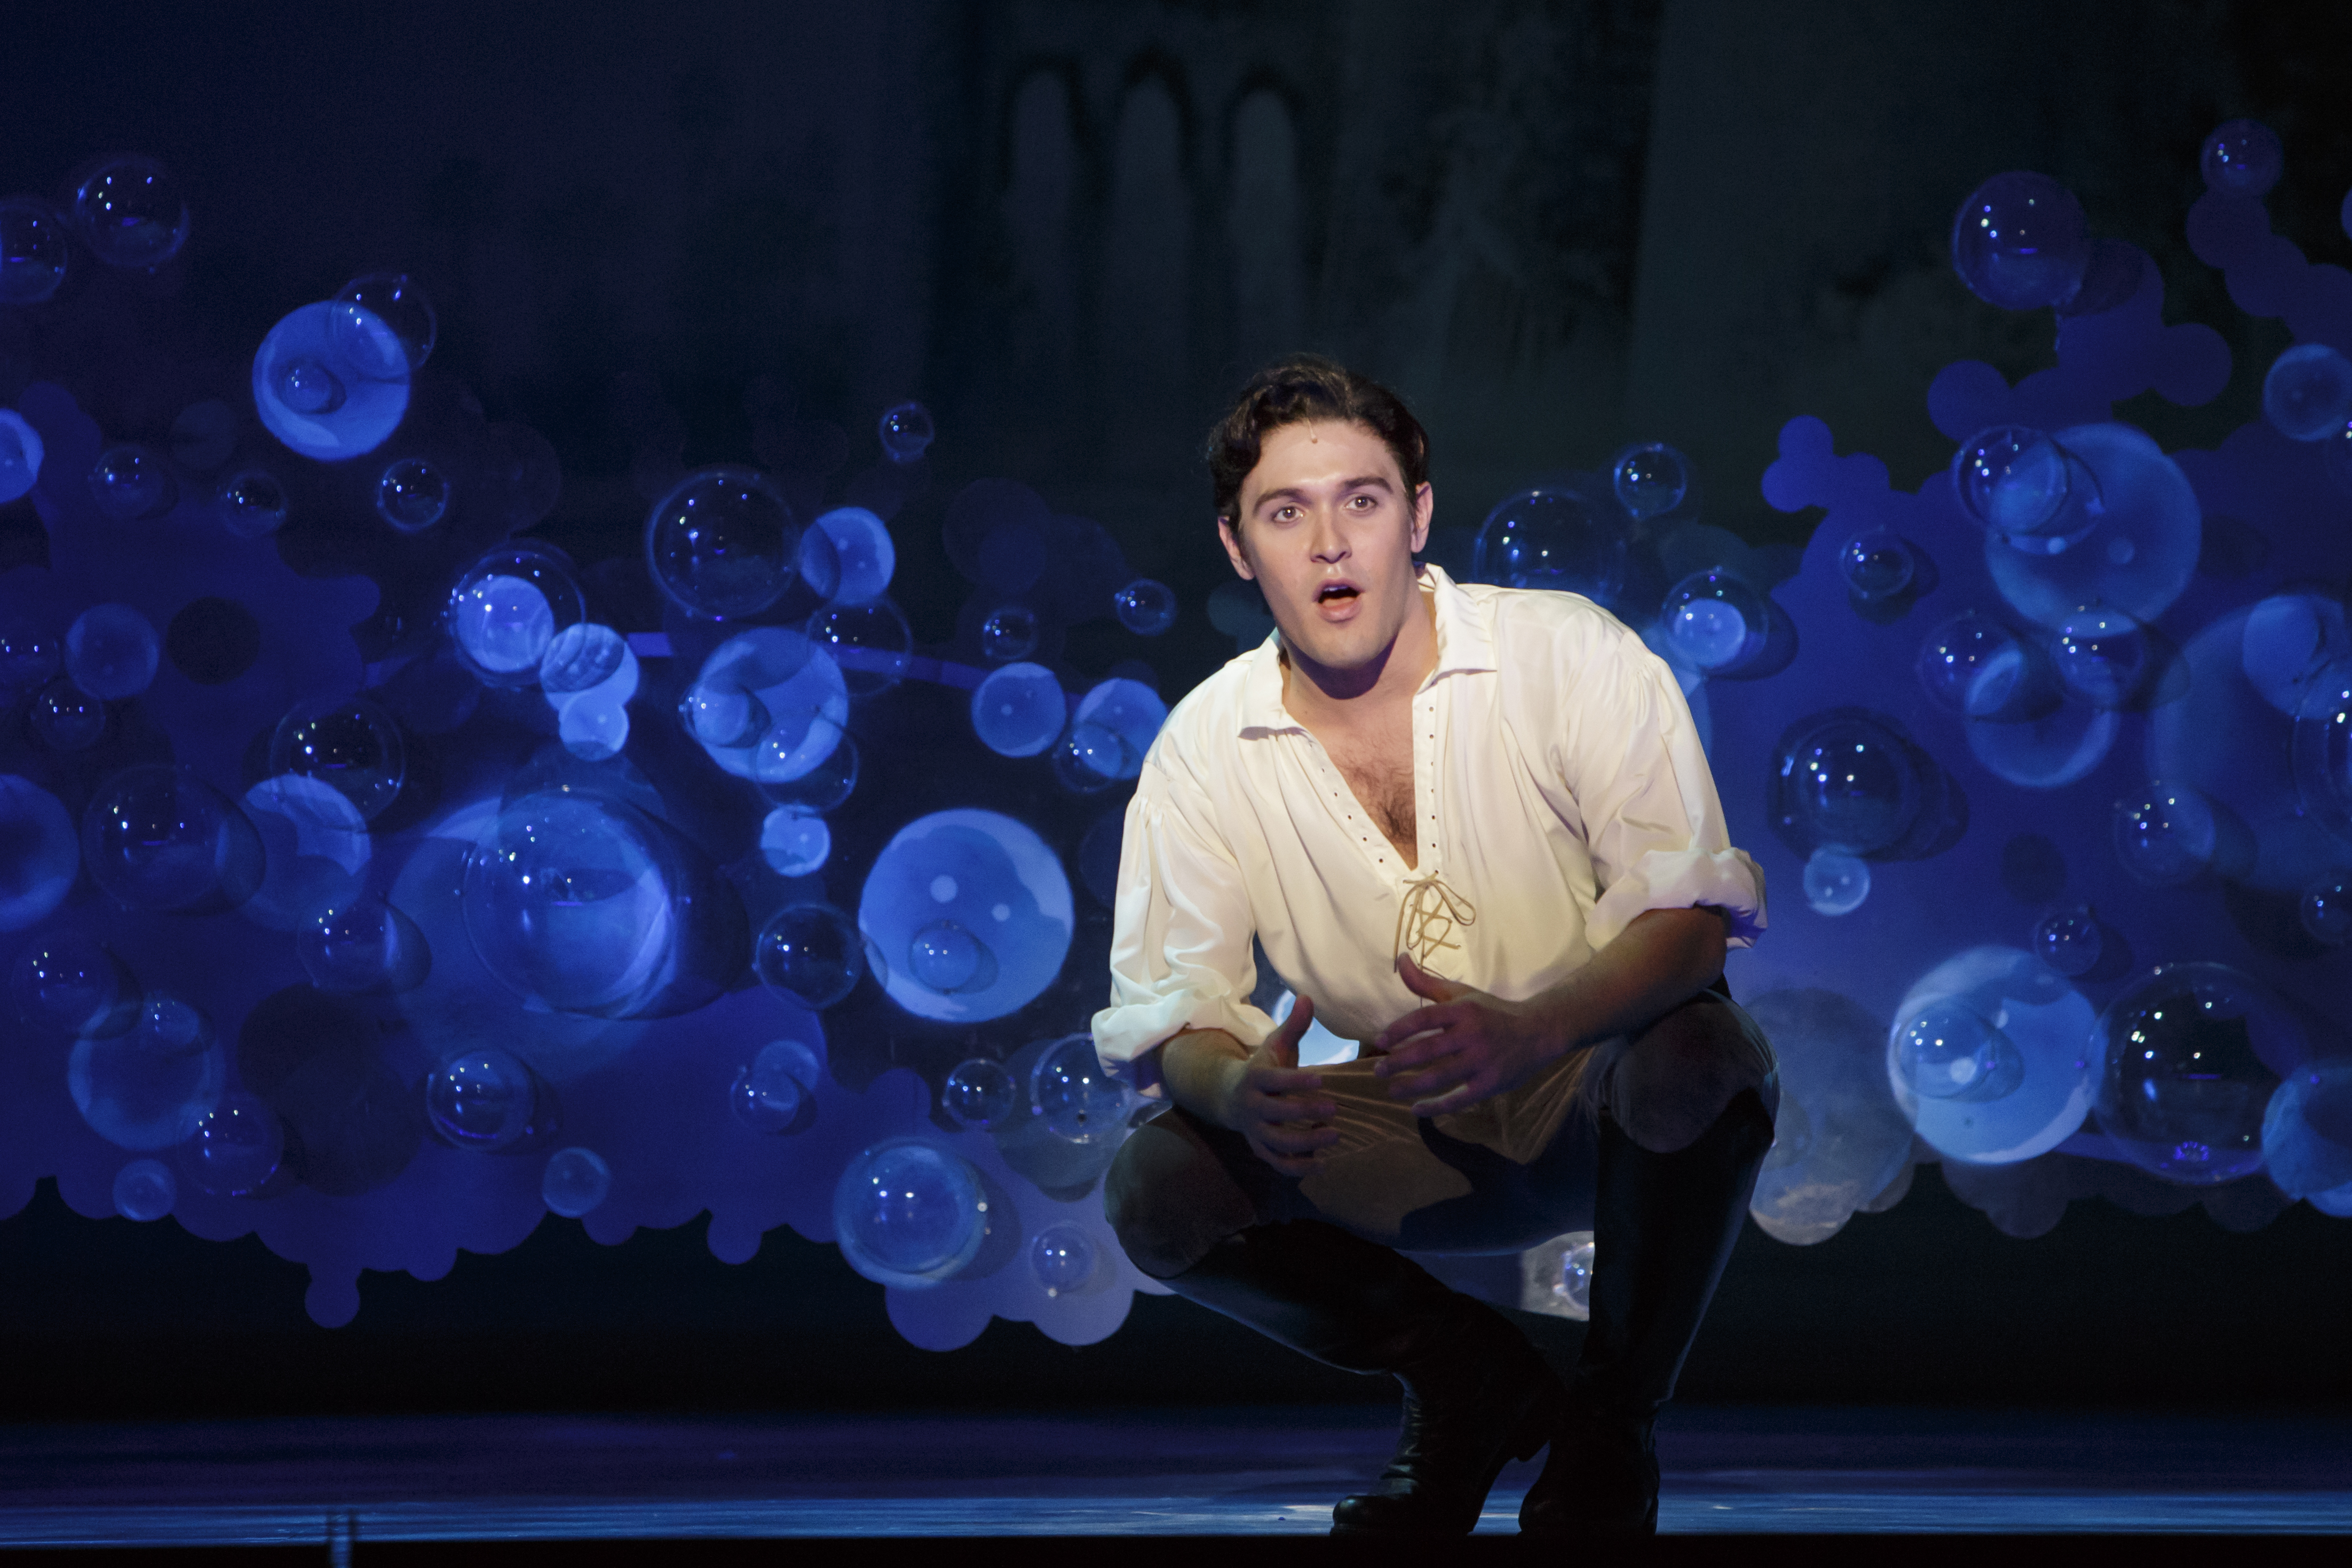 Matt Kacergis as Prince Eric in The 5th Avenue Theatre's Production of Disney's The Little Mermaid. Photo by Mark Kitaoka